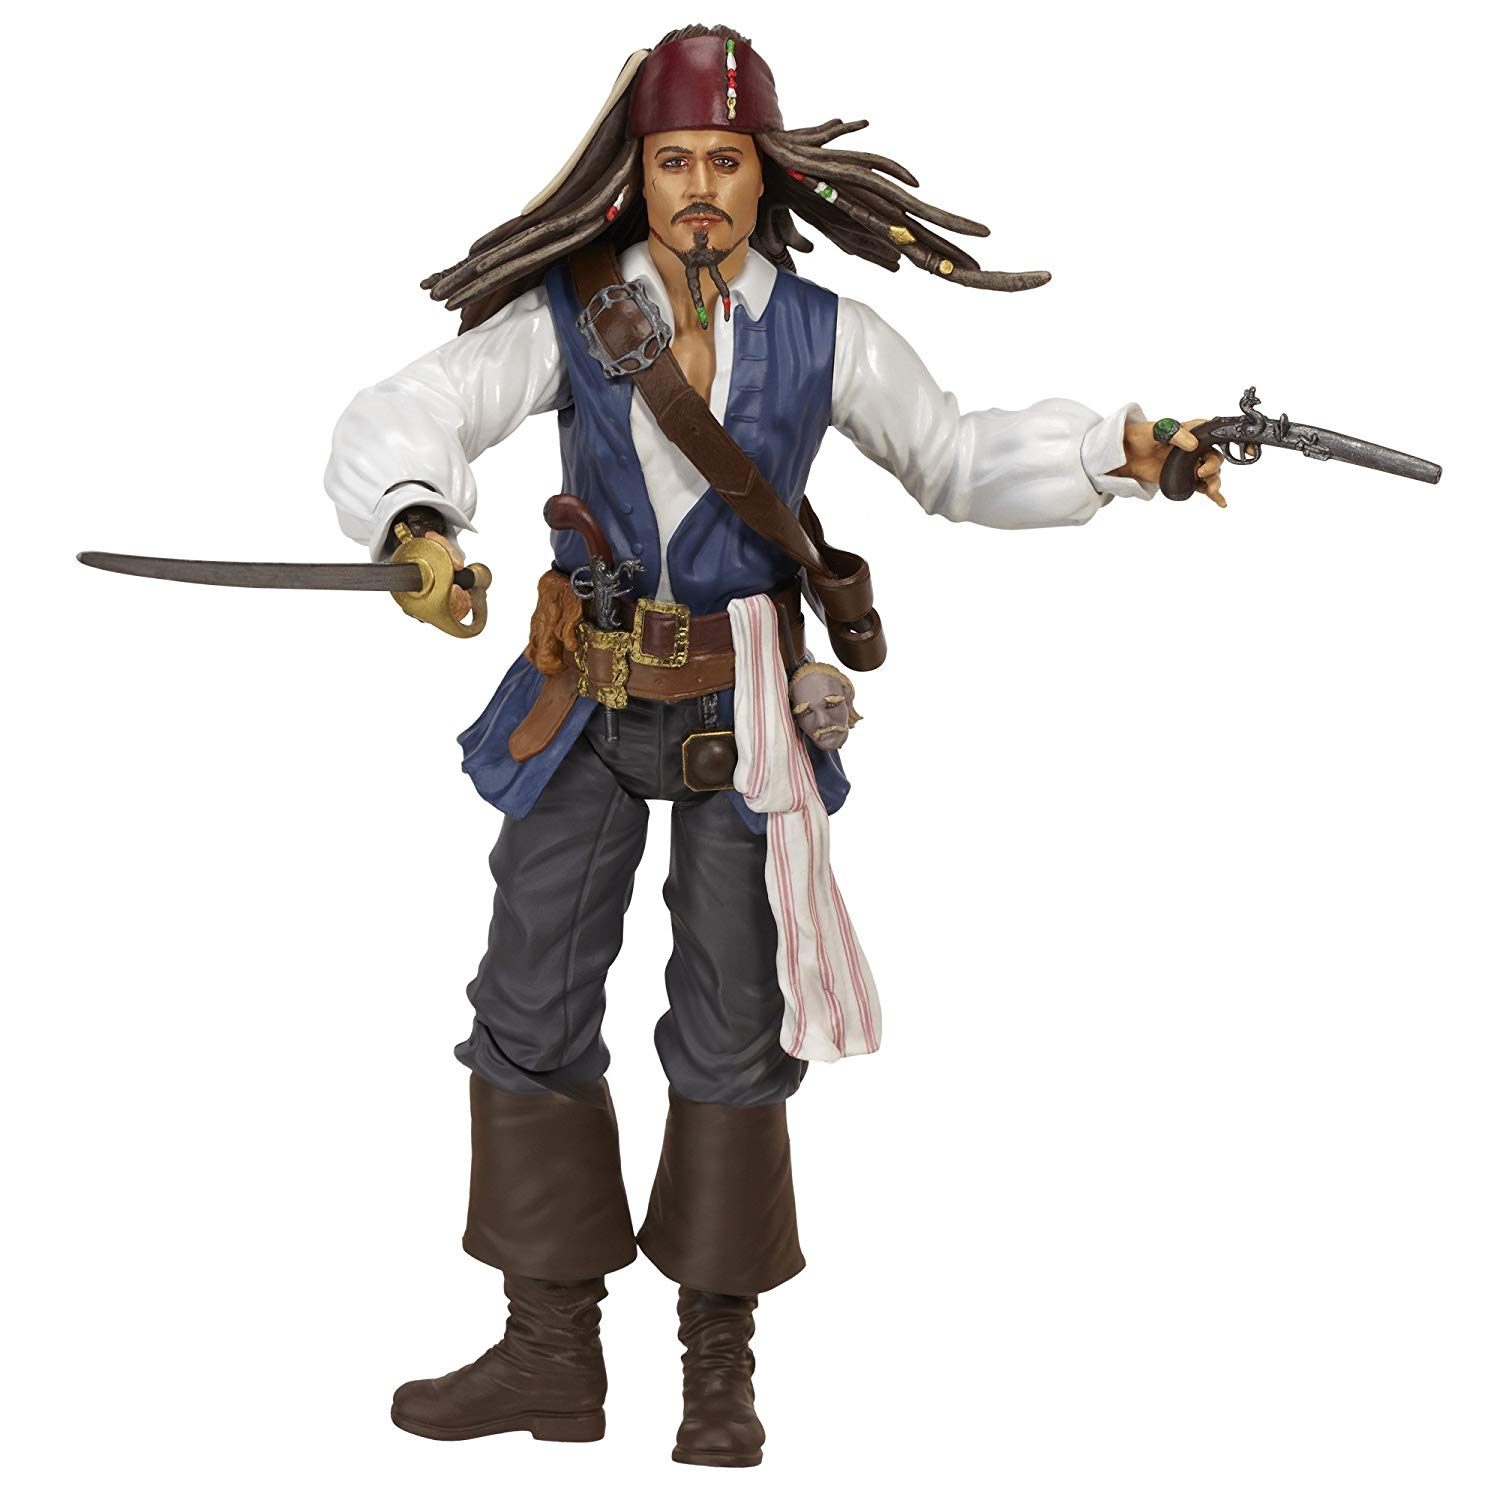 1500x1500 Pirates Of The Caribbean 12 Collector Figure Wave